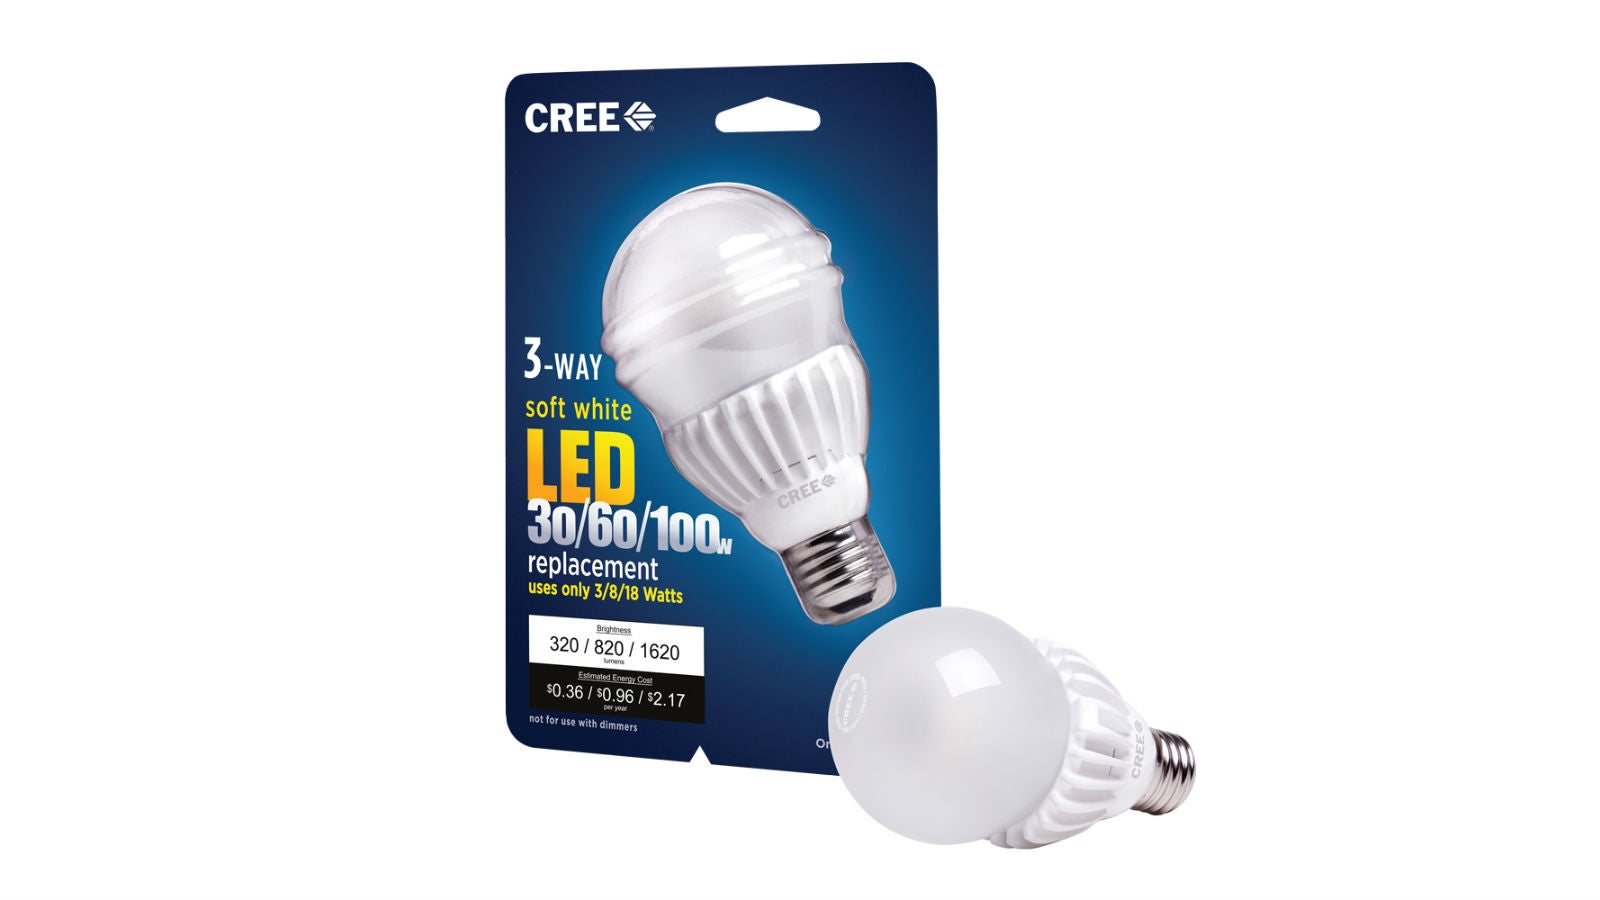 Cree's New 3-Way LED Bulb Brightens Better Than You're Used To